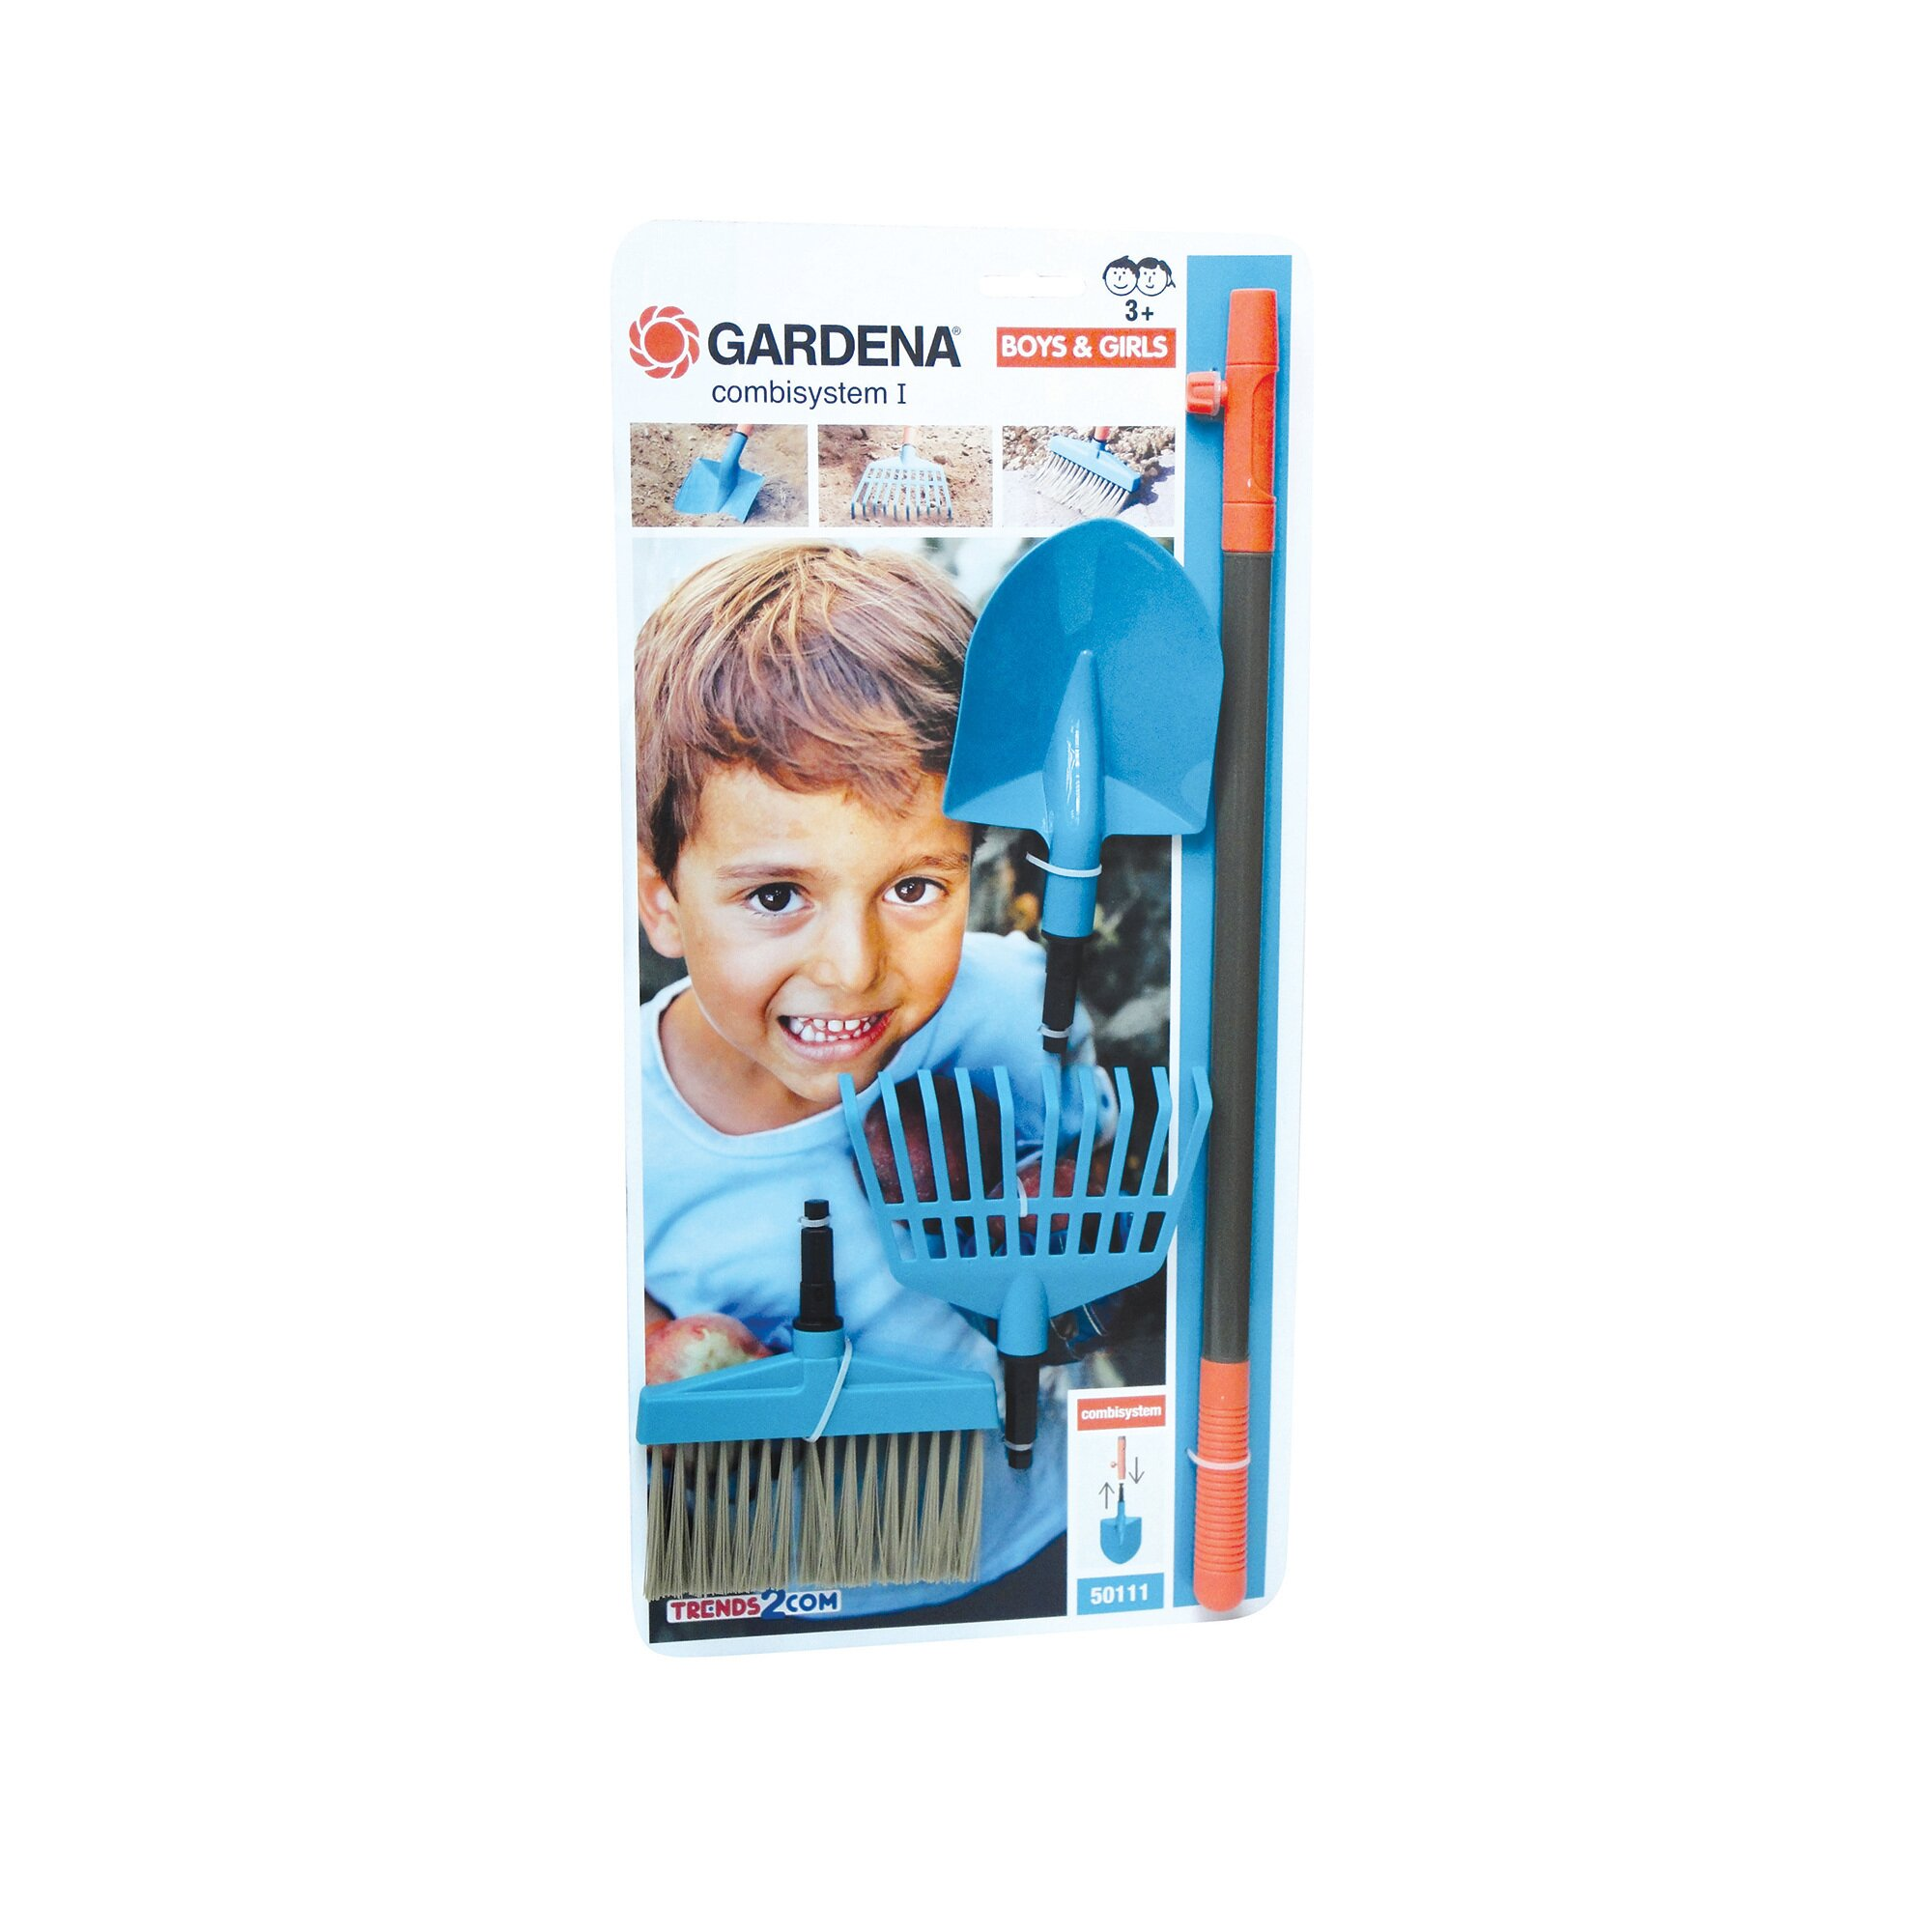 gardena-boys-girls-garten-kindergerate-set-gardena-combisystem-i